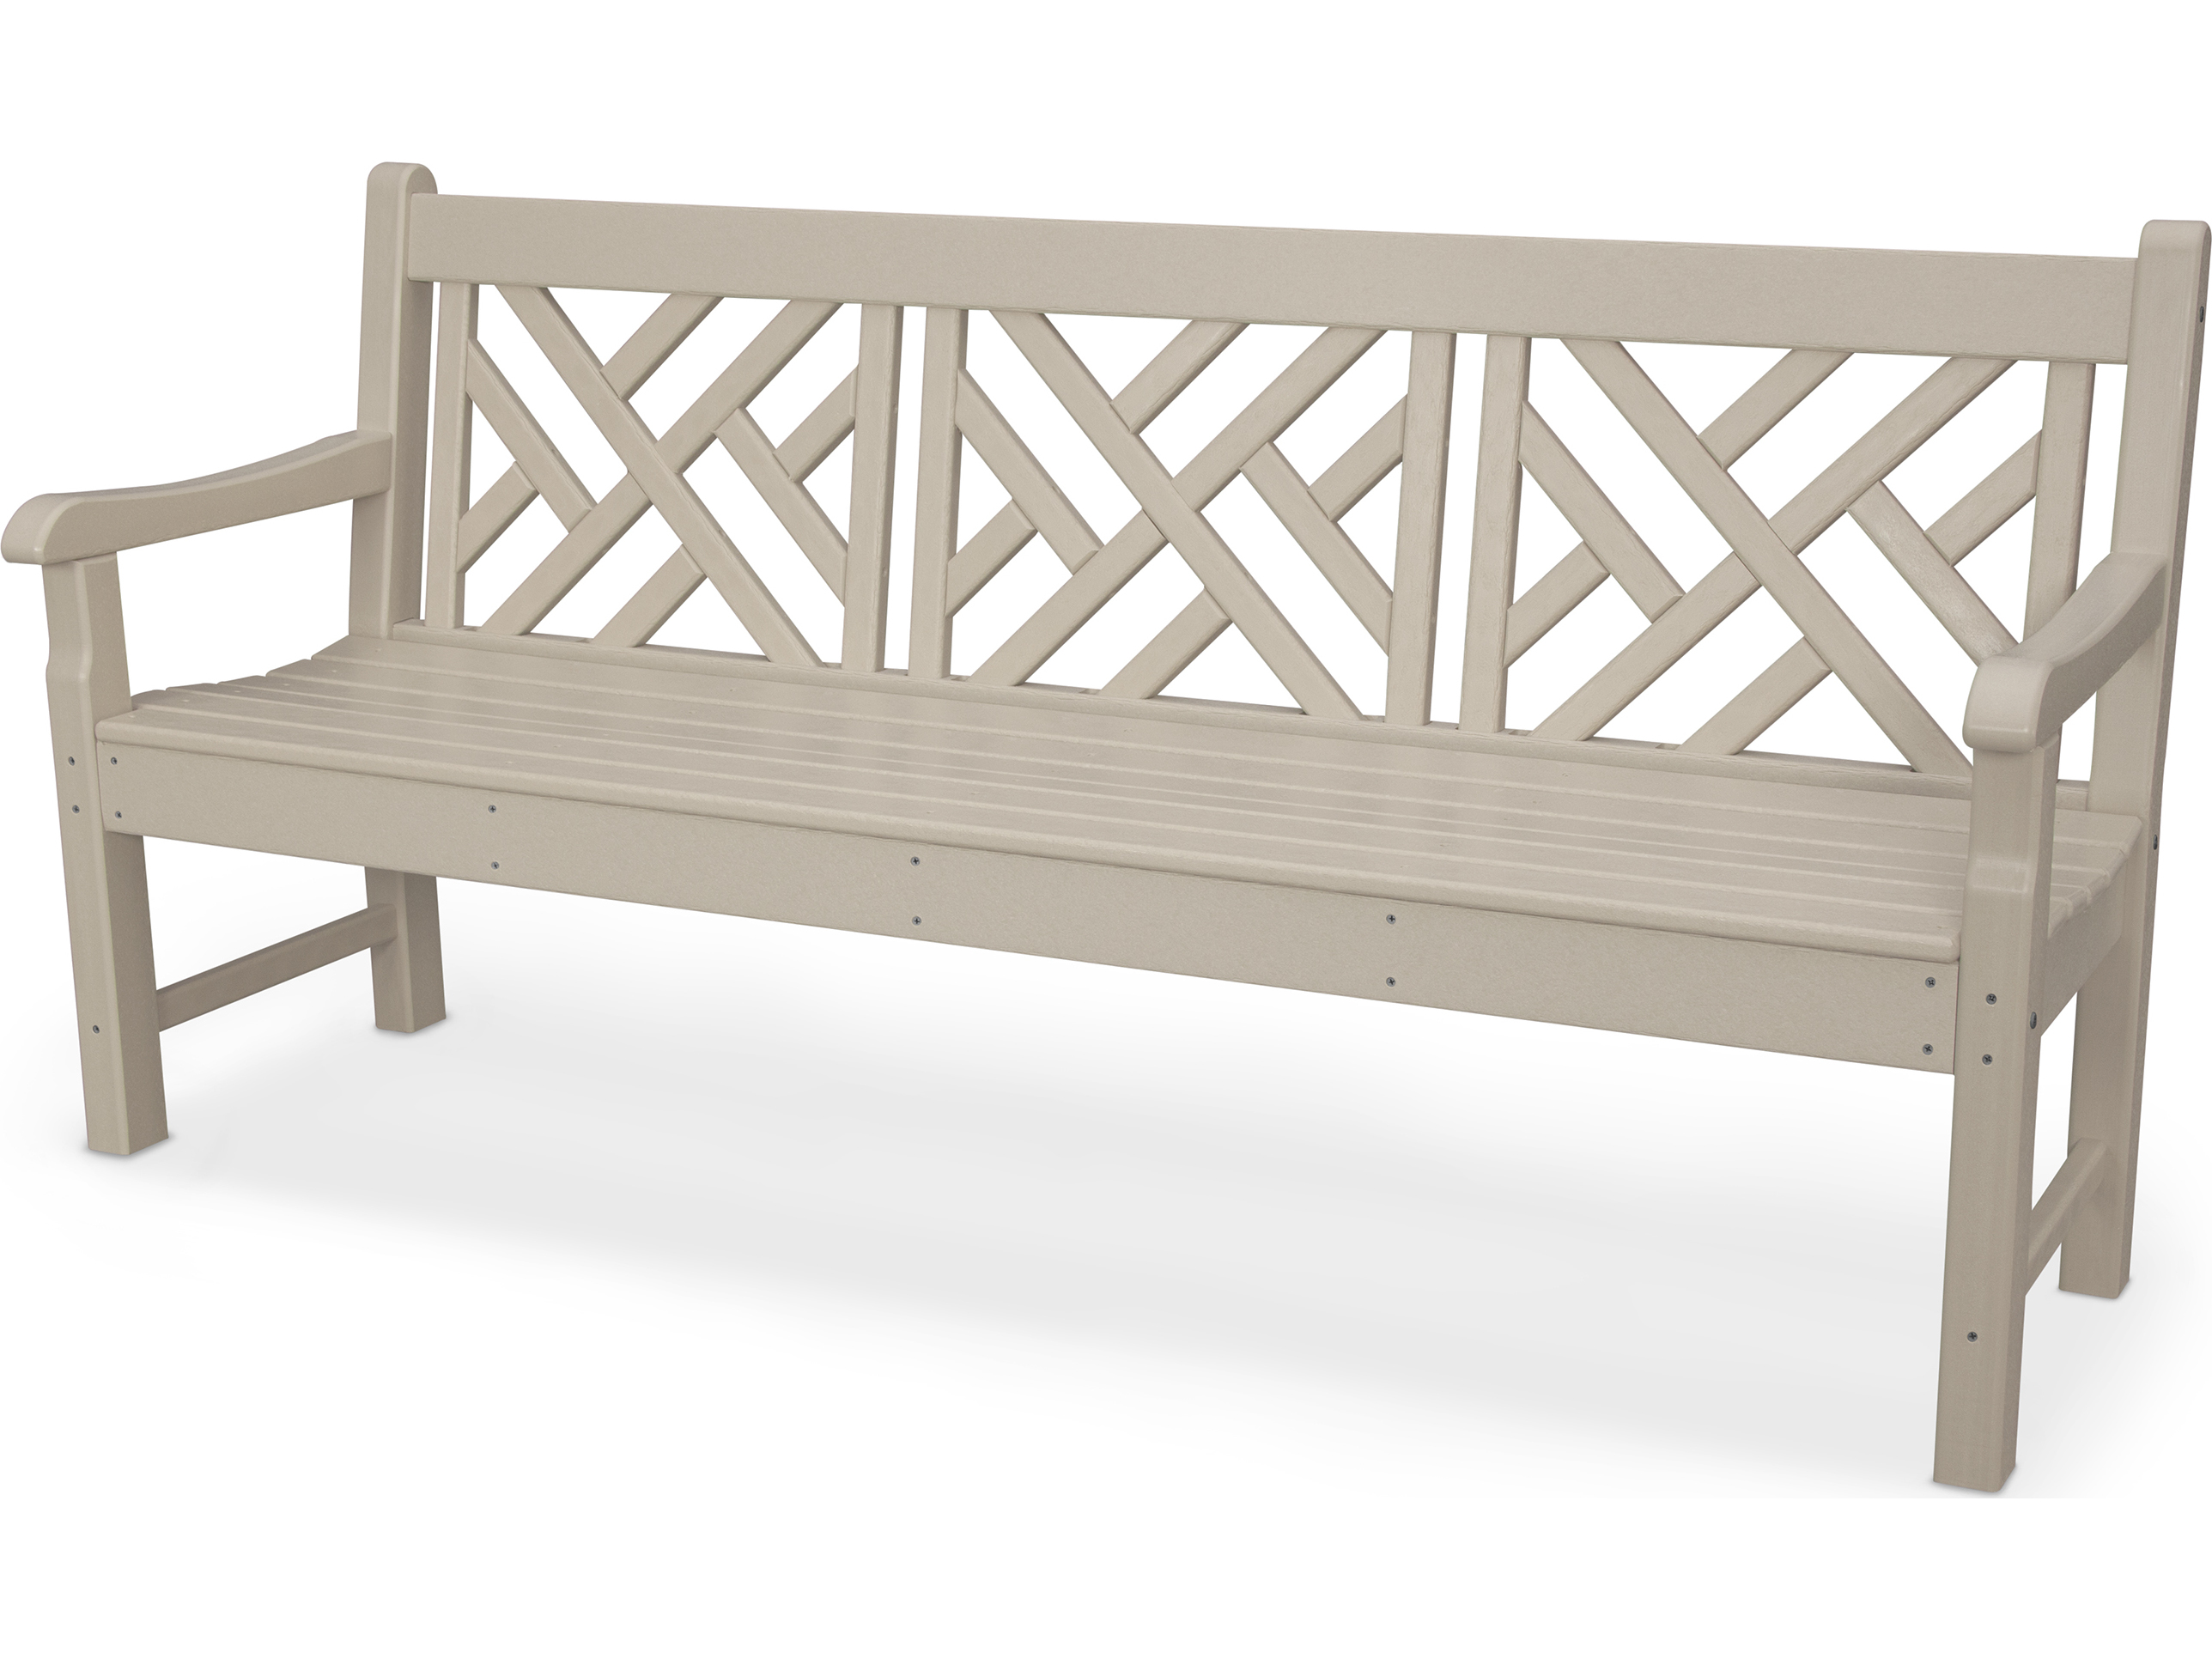 Polywood Rockford Recycled Plastic 72 Bench Rkcb72